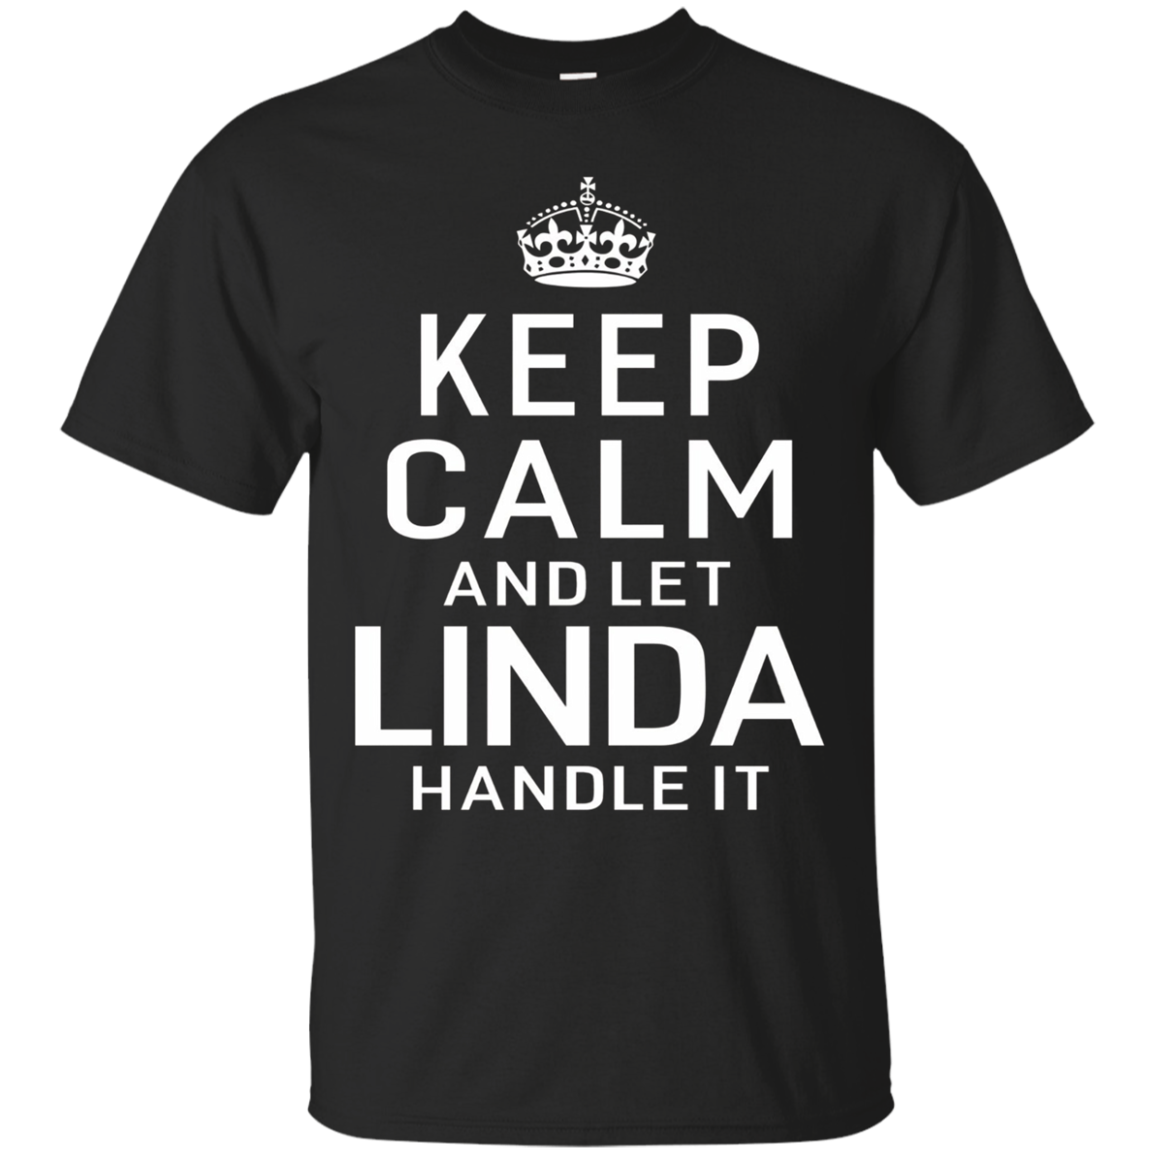 Keep Calm Let Linda Handle It Funny Gift Name T-shirt Women